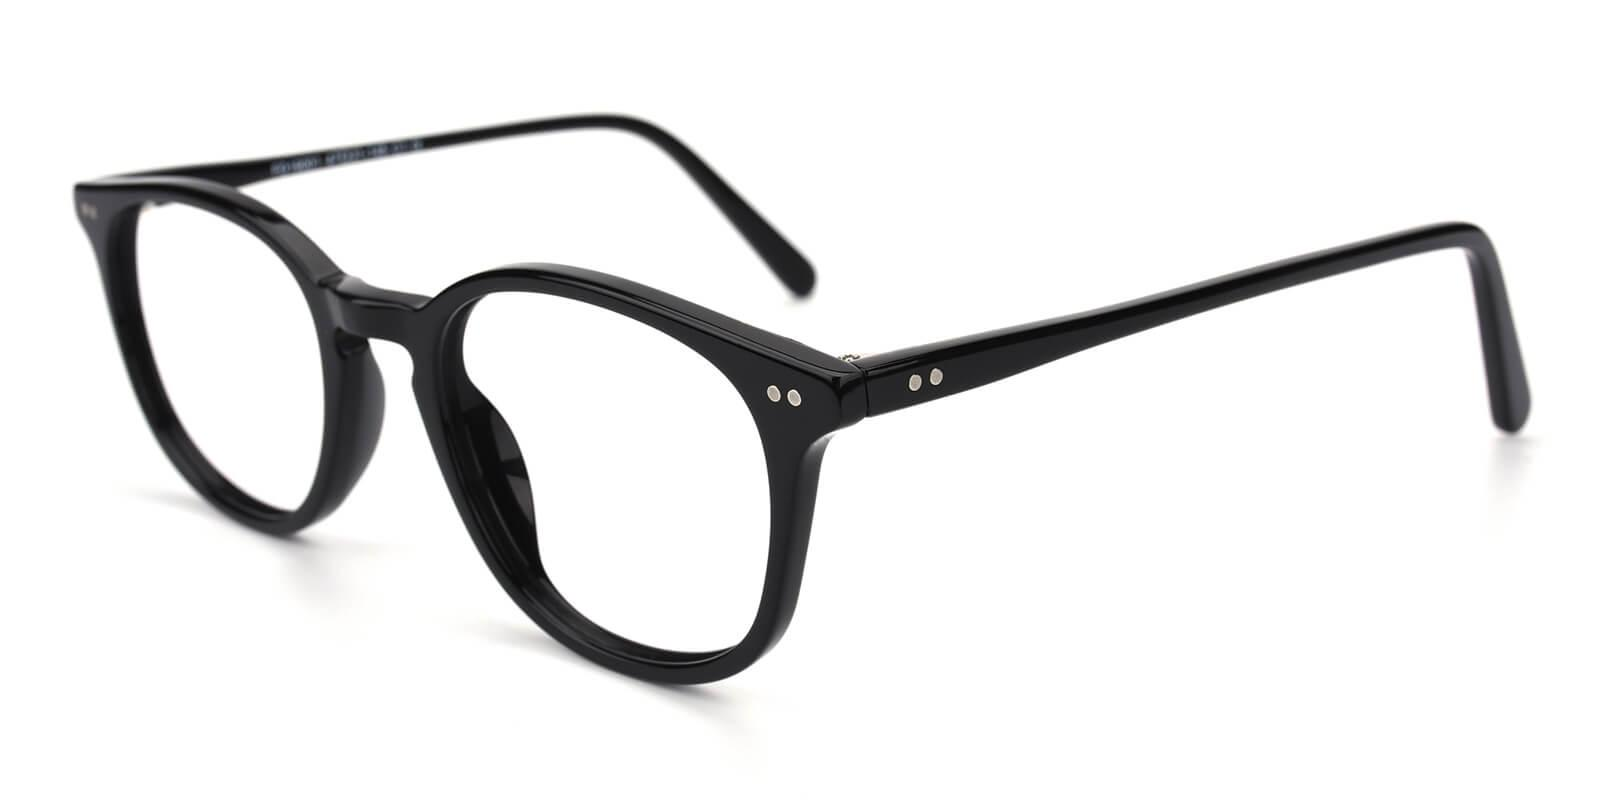 Trendiary-Black-Square-Acetate-Eyeglasses-additional1